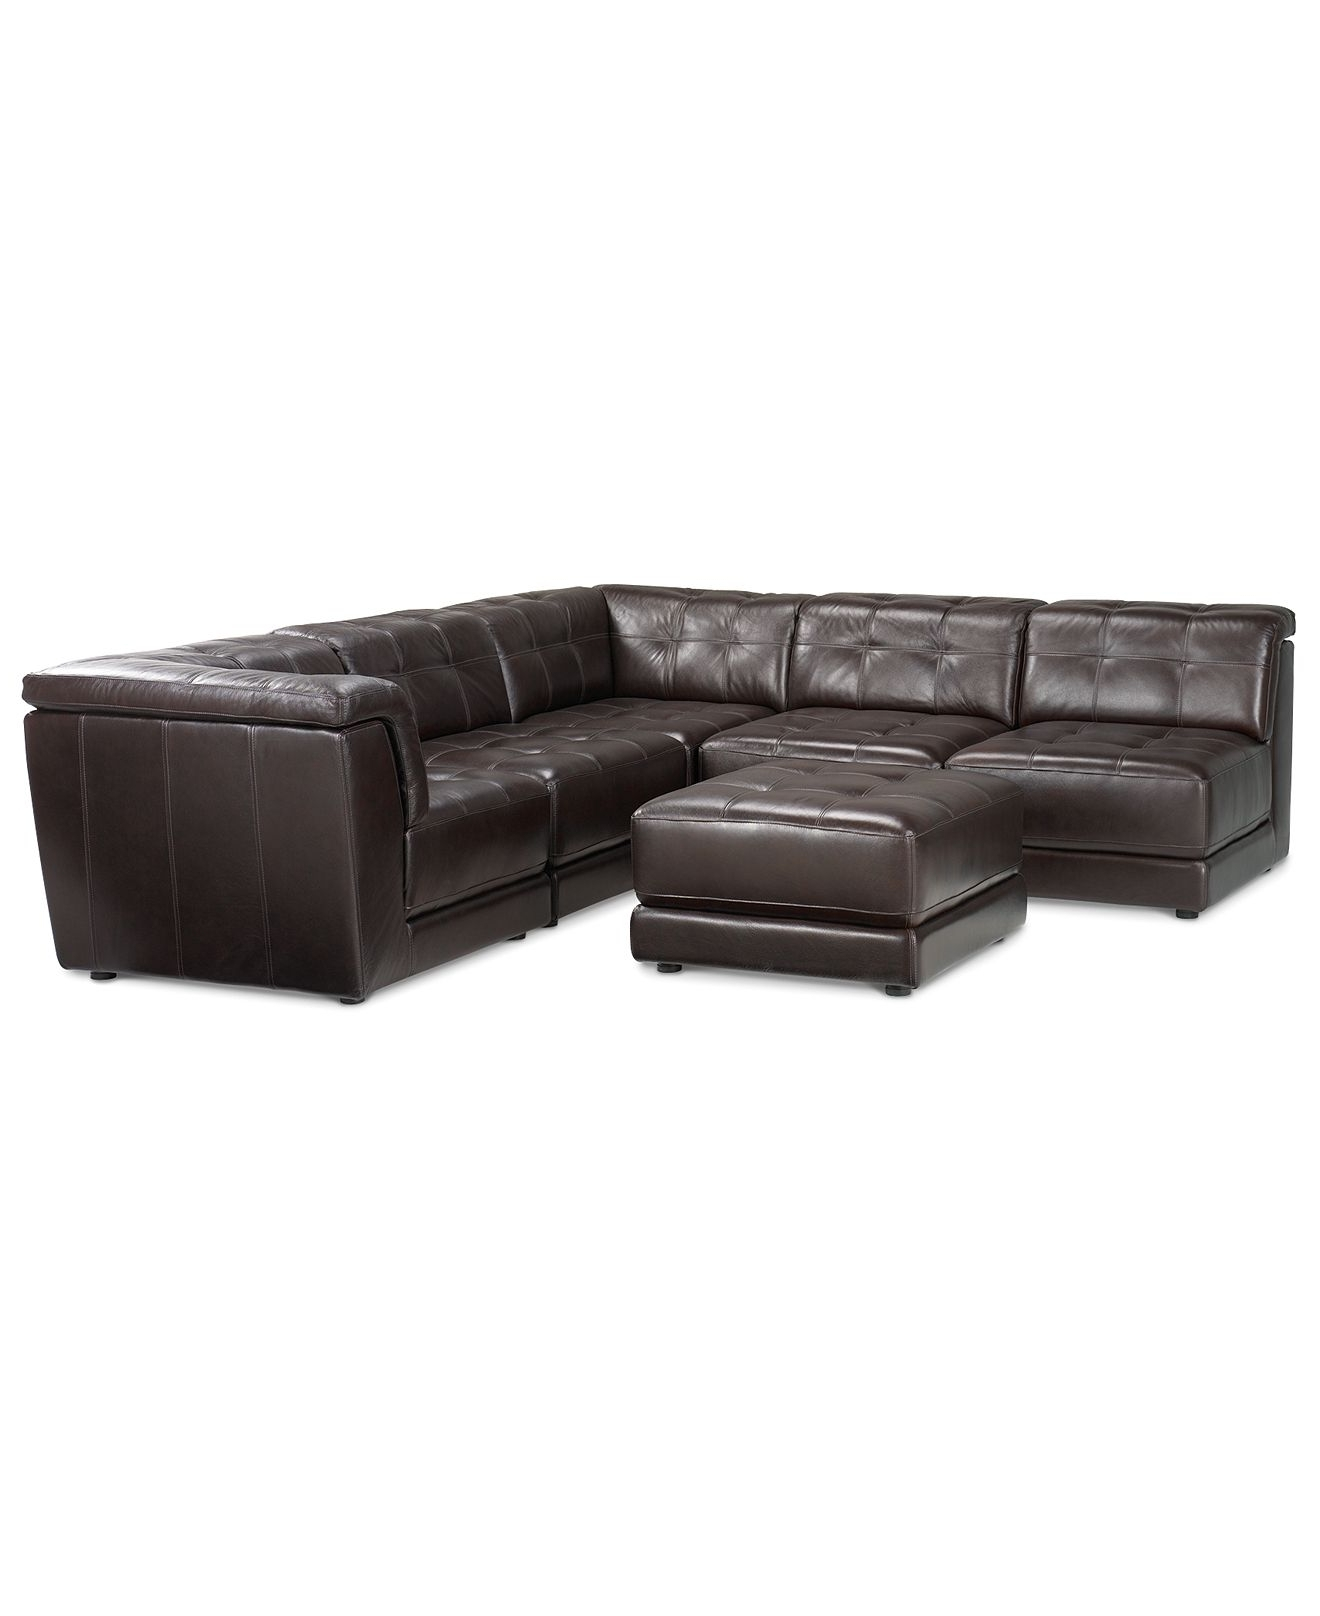 6 Piece Leather Sectional Sofas For Most Current Macy's Stacey Leather Sectional Sofa, 6 Piece Modular (3 Armless (View 4 of 20)